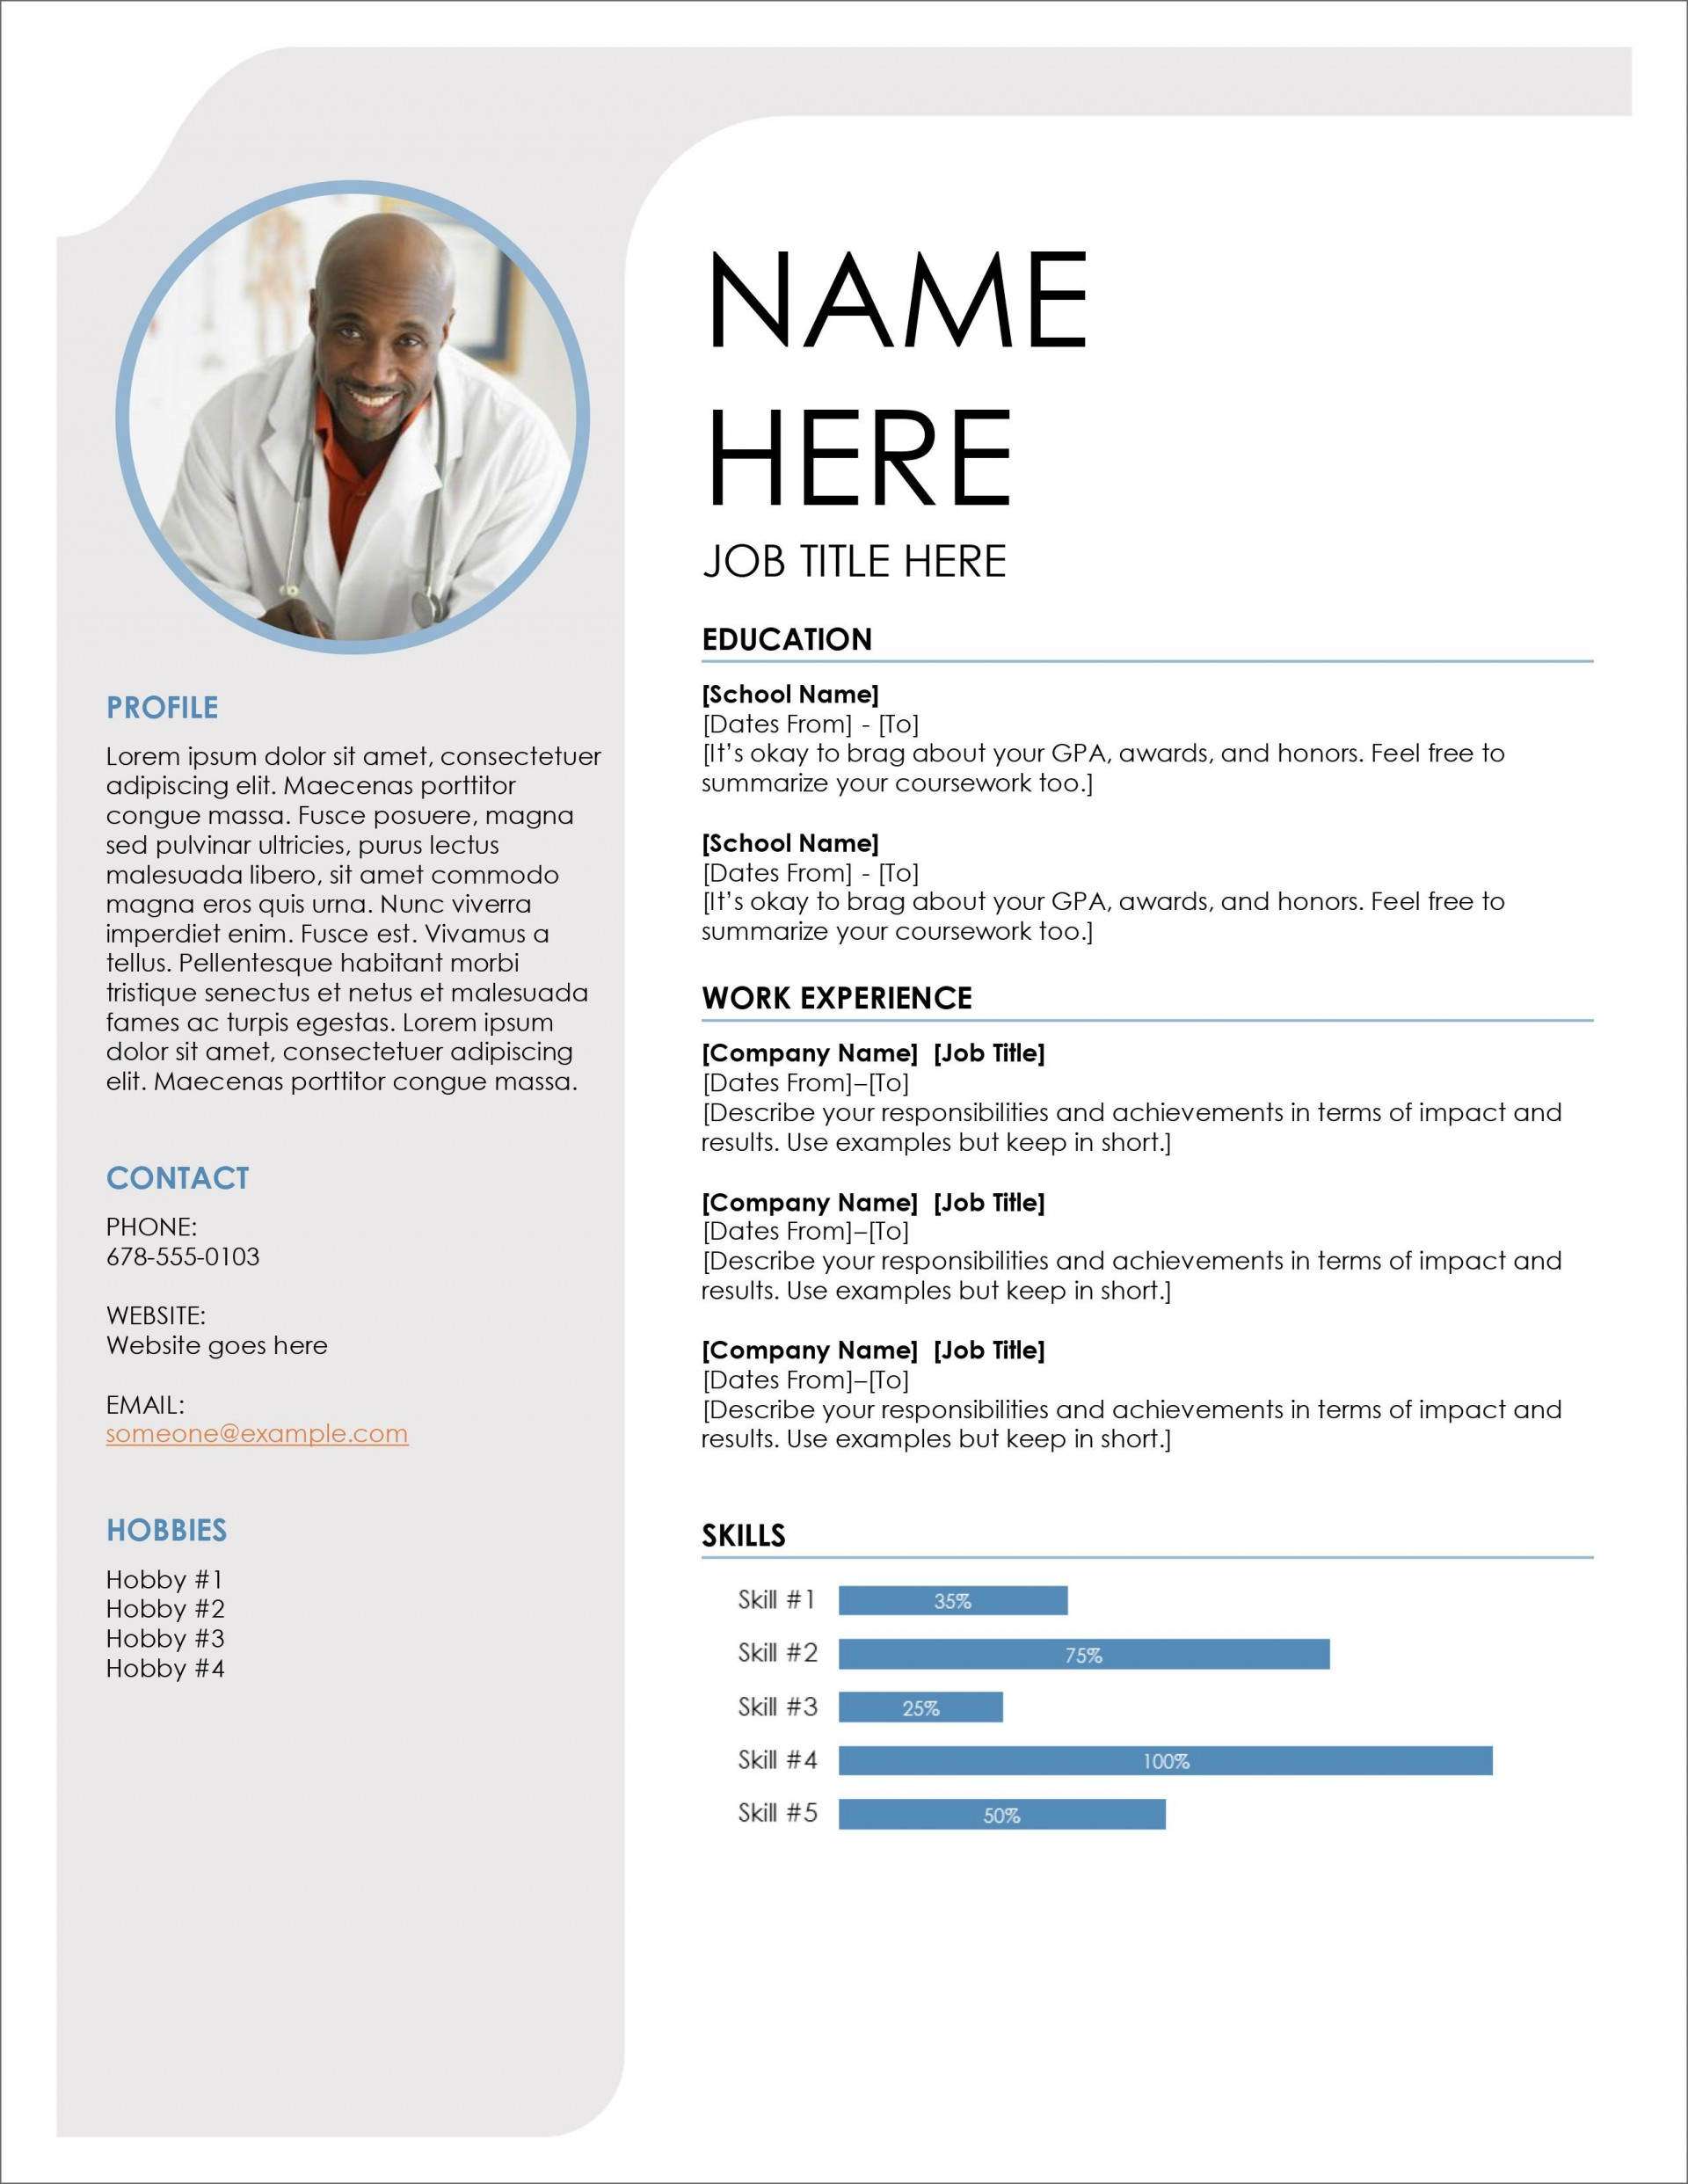 006 Unusual Microsoft Word Template Download High Definition  2010 Resume Free 2007 Error Invoice1920